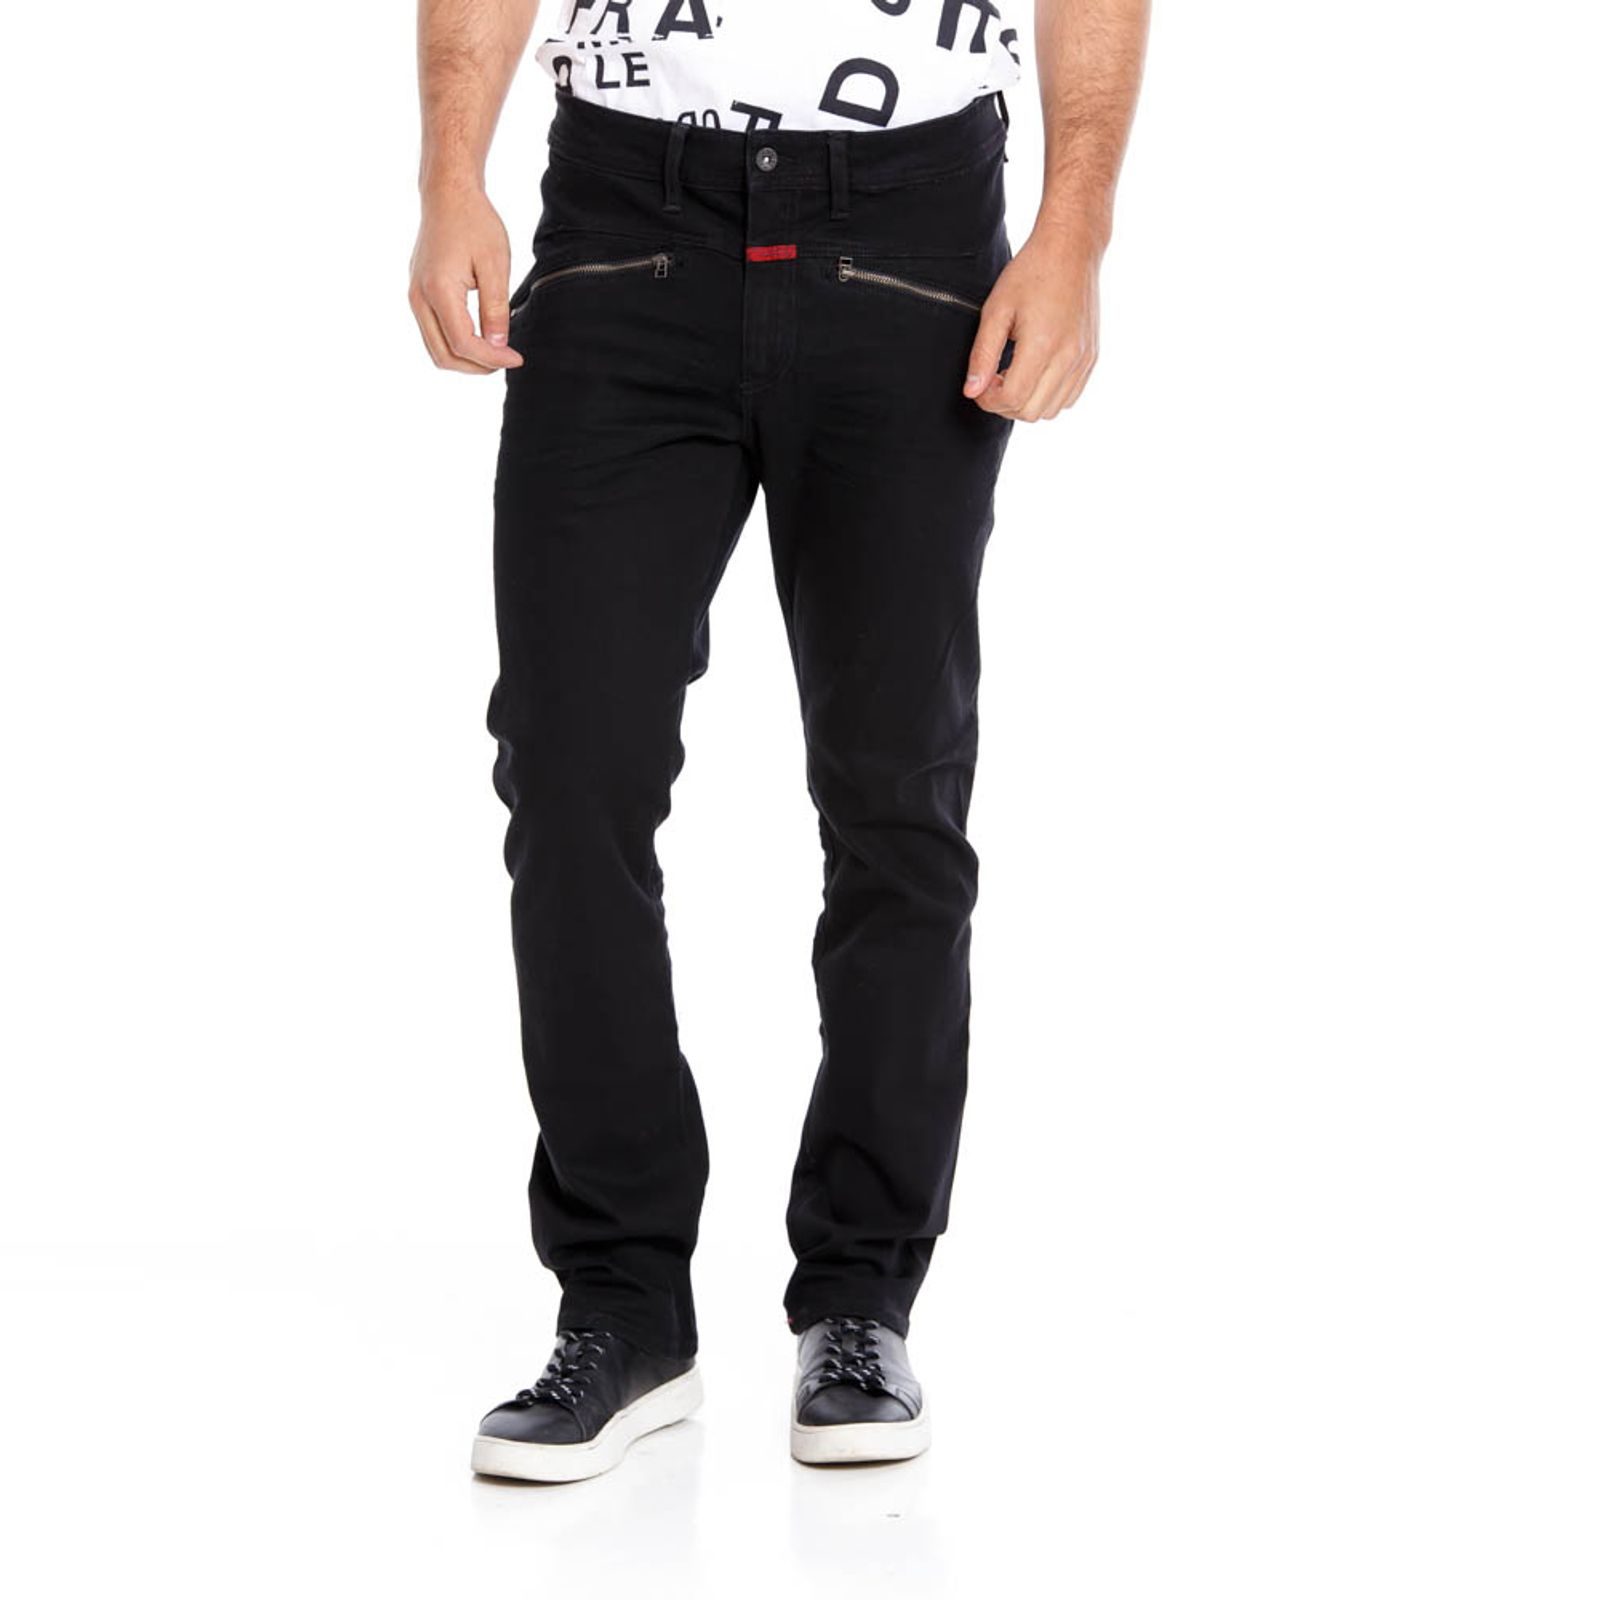 Jean Para Hombre Lovex Marithe Francois Girbaud 1630 Jeans Girbaud Girbaud Colombia